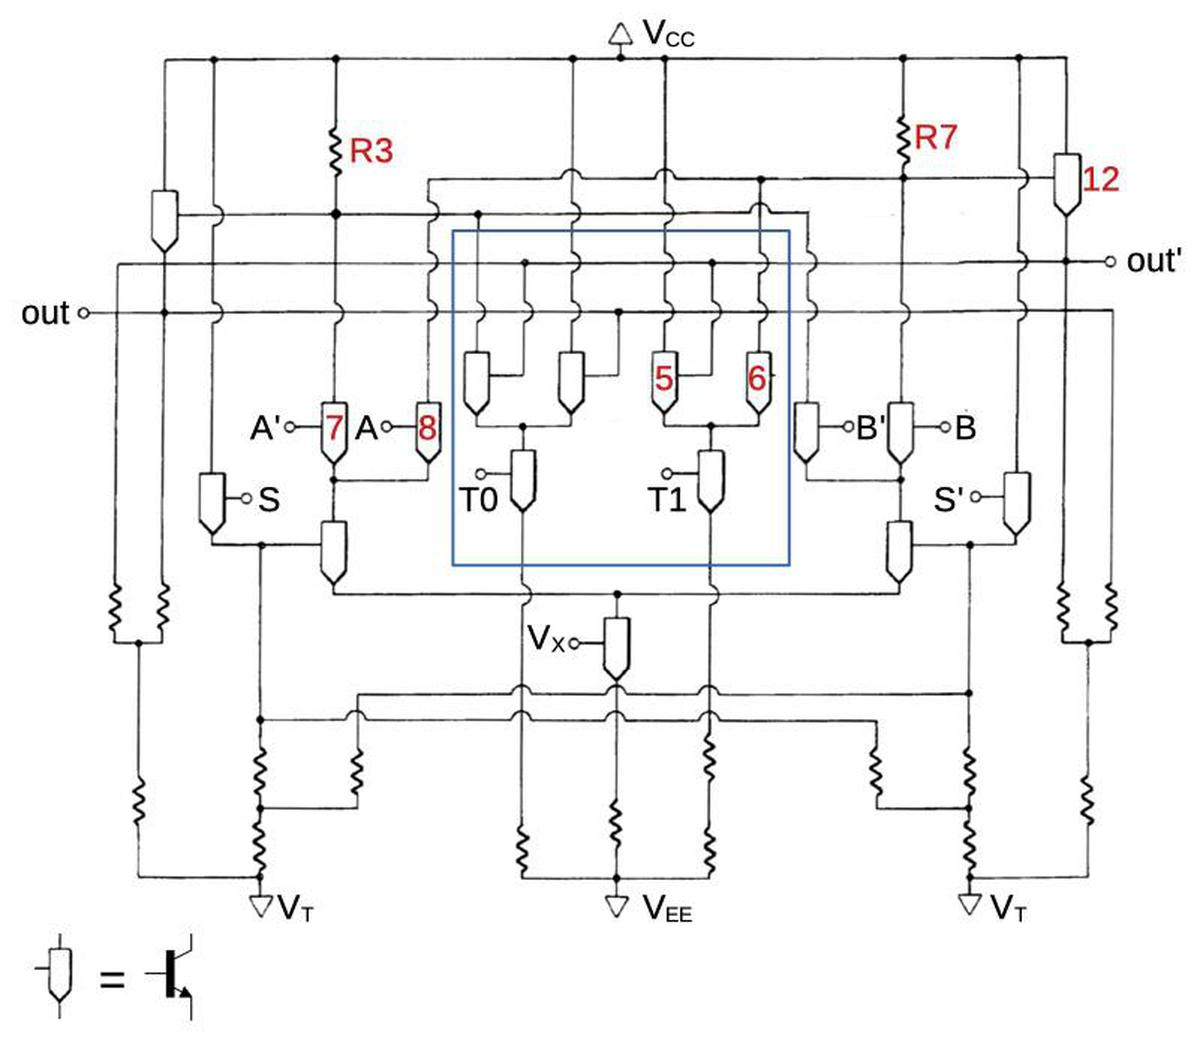 Schematic of the DCS logic gate, as implemented on the chip. Vcc and Vee are the power supplies for the collector and emitter respectively. Vx controls the current sink. Vt is the pull-down voltage for the emitter-followers, but I'm not sure what Vt stands for. The original schematic was for an AND gate; I modified it to show a SELECT gate.